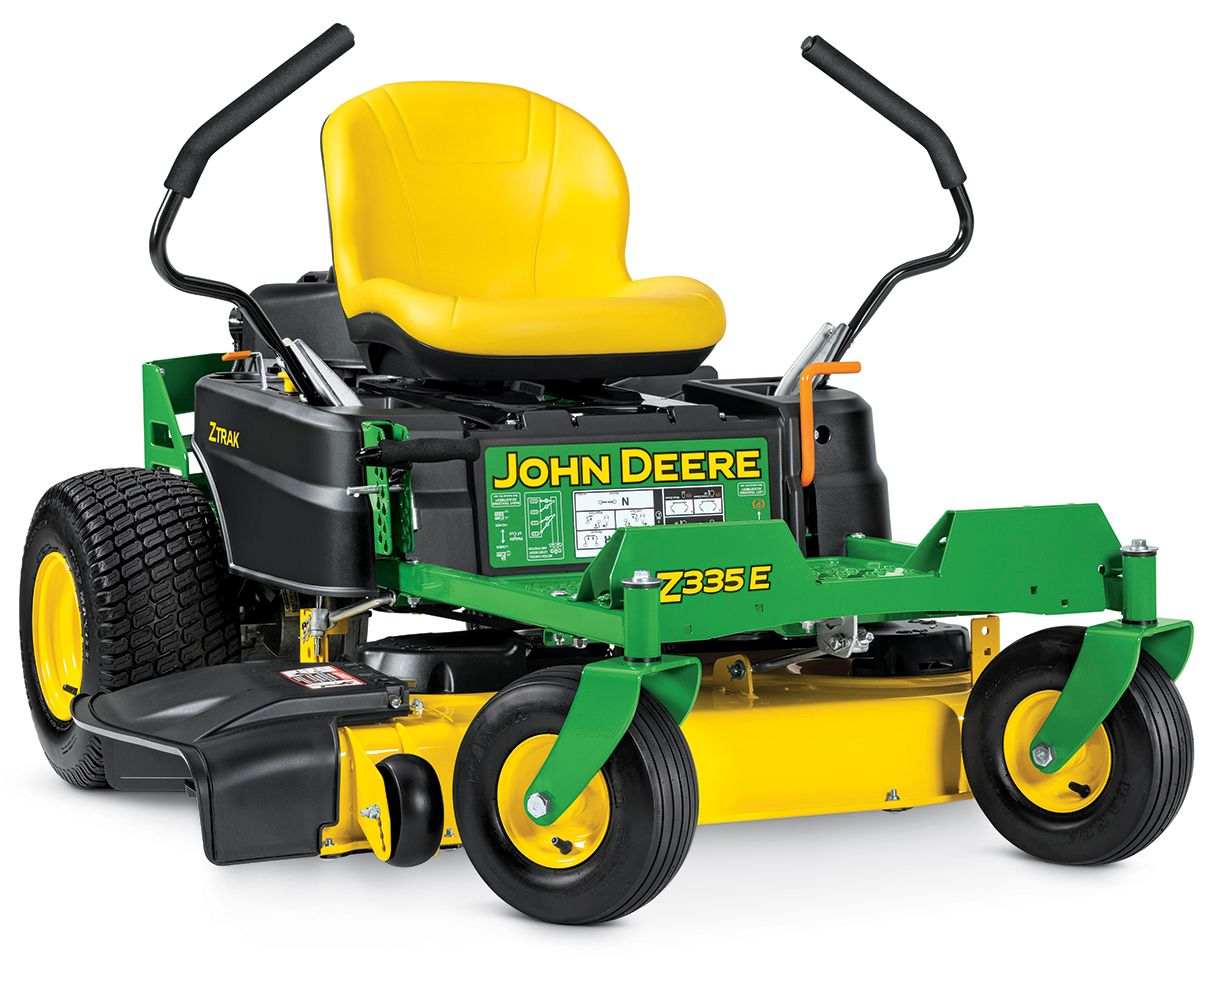 John Deere Z335E 20-HP V-twin Dual Hydrostatic 42-in Zero